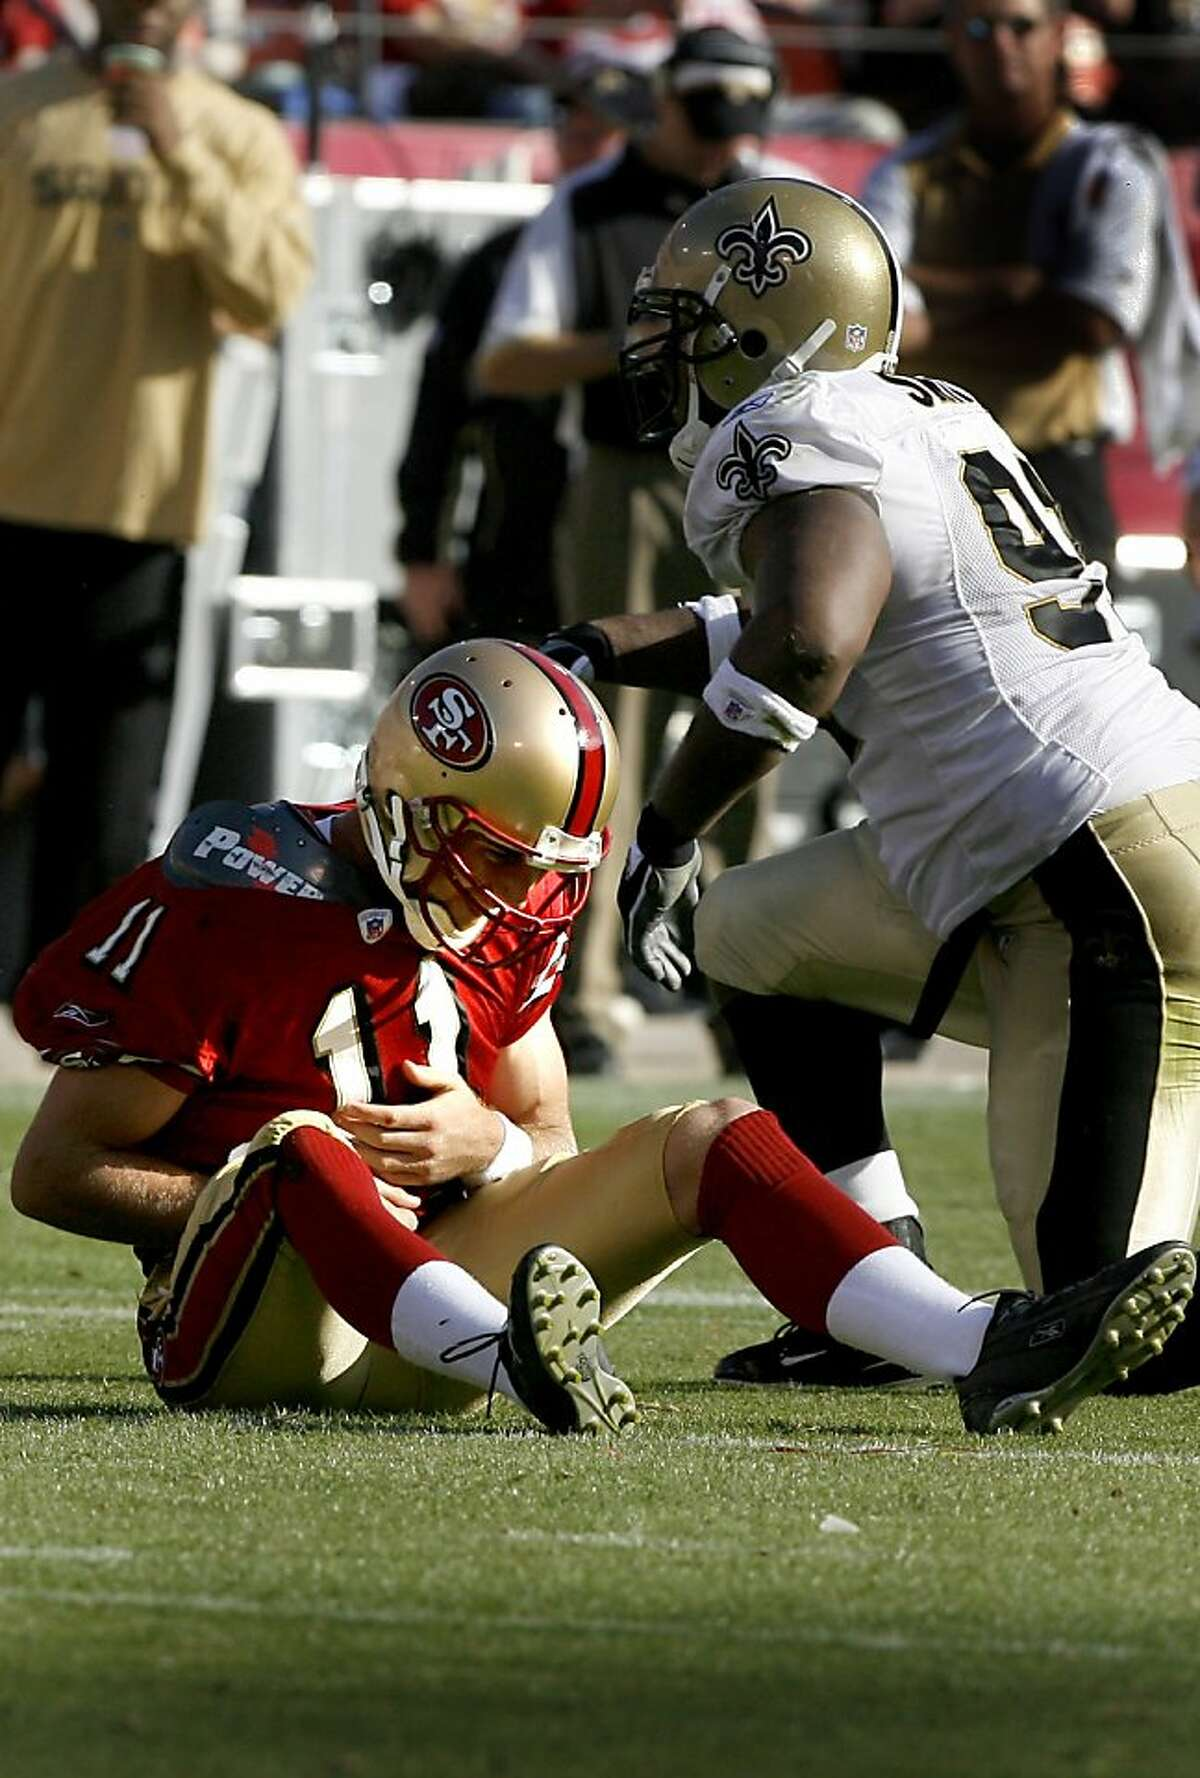 49ers_099.JPG 49ers quarterback Alex Smith got up slowly after being sacked by DE Will Smith in 2nd half. Game action at Monster Park between San Francisco 49ers and New Orleans Saints Sunday. The Saints won 30-10. {By Brant Ward/San Francisco Chronicle}10/28/07 Ran on: 10-29-2007 Smith would get up slowly after this sack by New Orleans' Will Smith in the fourth quarter. Ran on: 10-29-2007 Smith would get up slowly after this sack by New Orleans' Will Smith in the second quarter. Ran on: 10-29-2007 Ran on: 09-07-2011 Smith, with an injured shoulder, had that rundown feeling against the Saints.